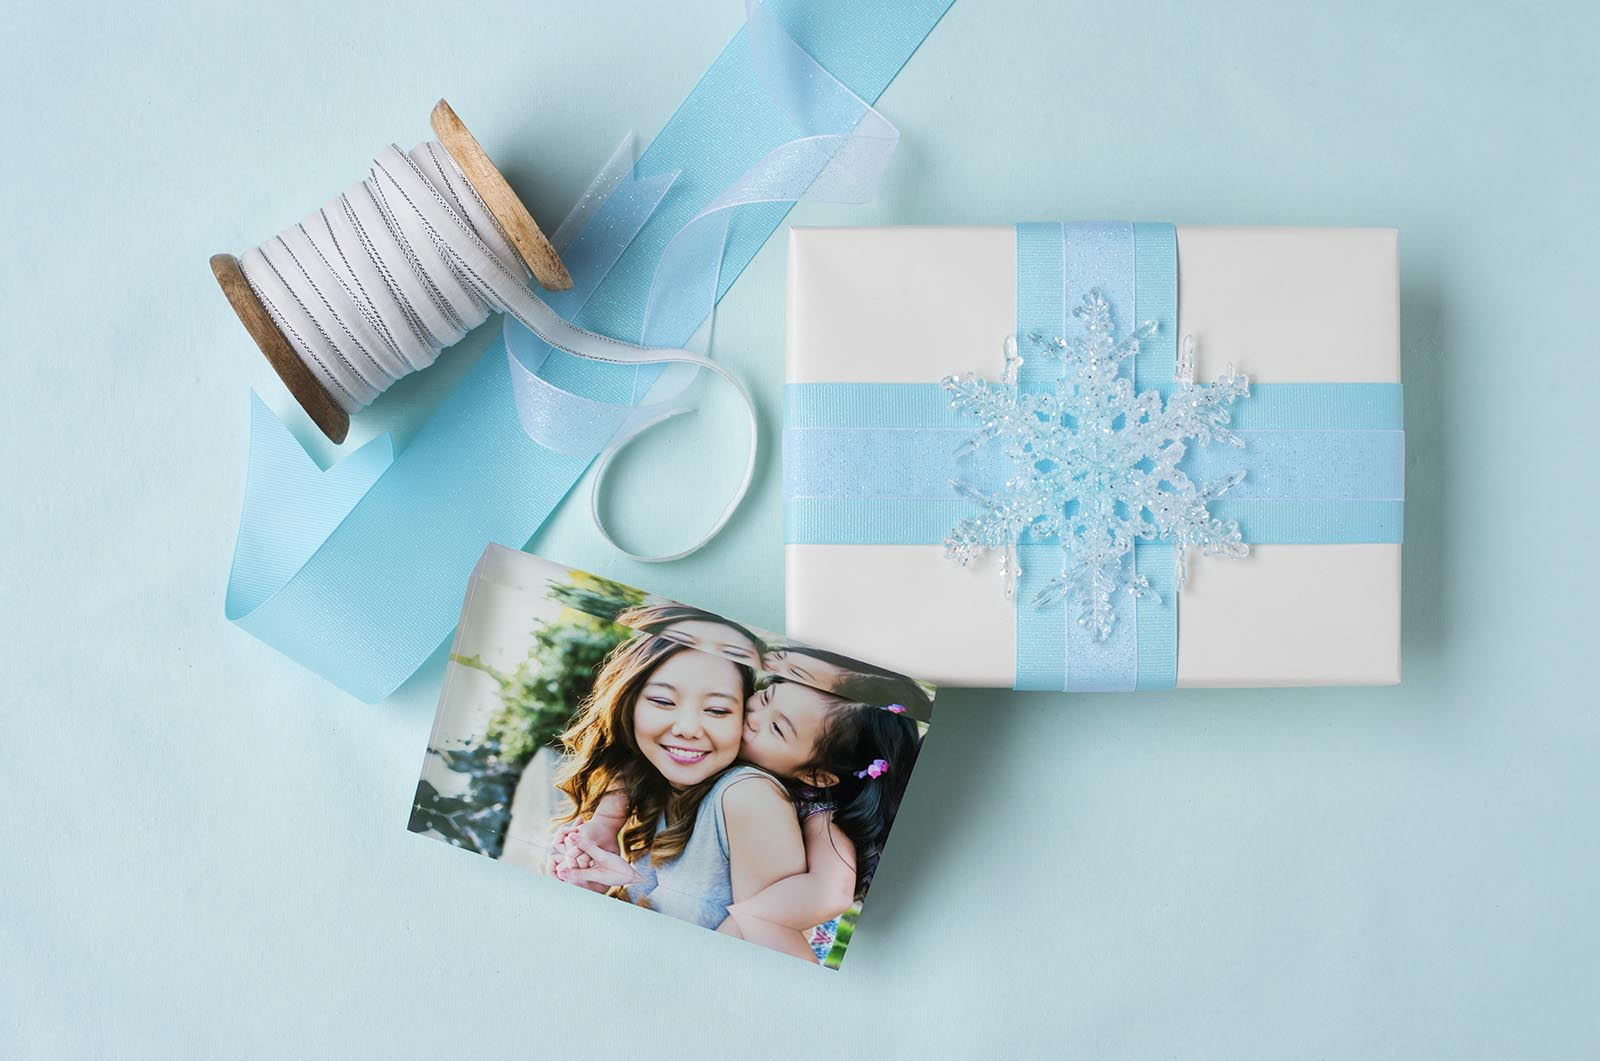 Wrapping paper flat lay image